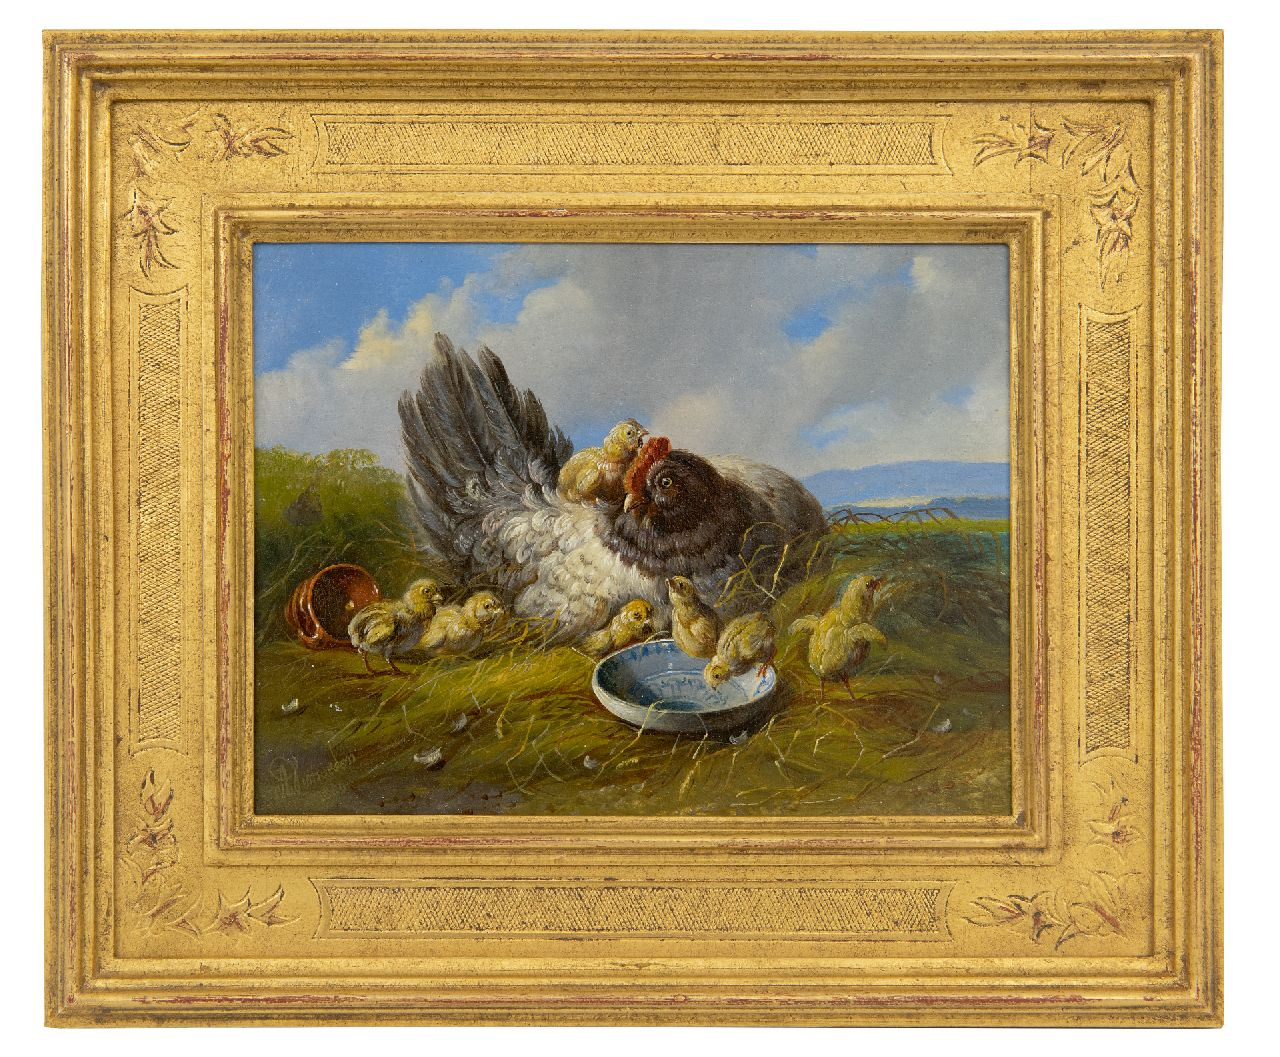 Verhoesen A.  | Albertus Verhoesen | Paintings offered for sale | Hen with chicks in a landscape (pair with 21928), oil on panel 14.7 x 19.2 cm, signed l.l. and dated 1880